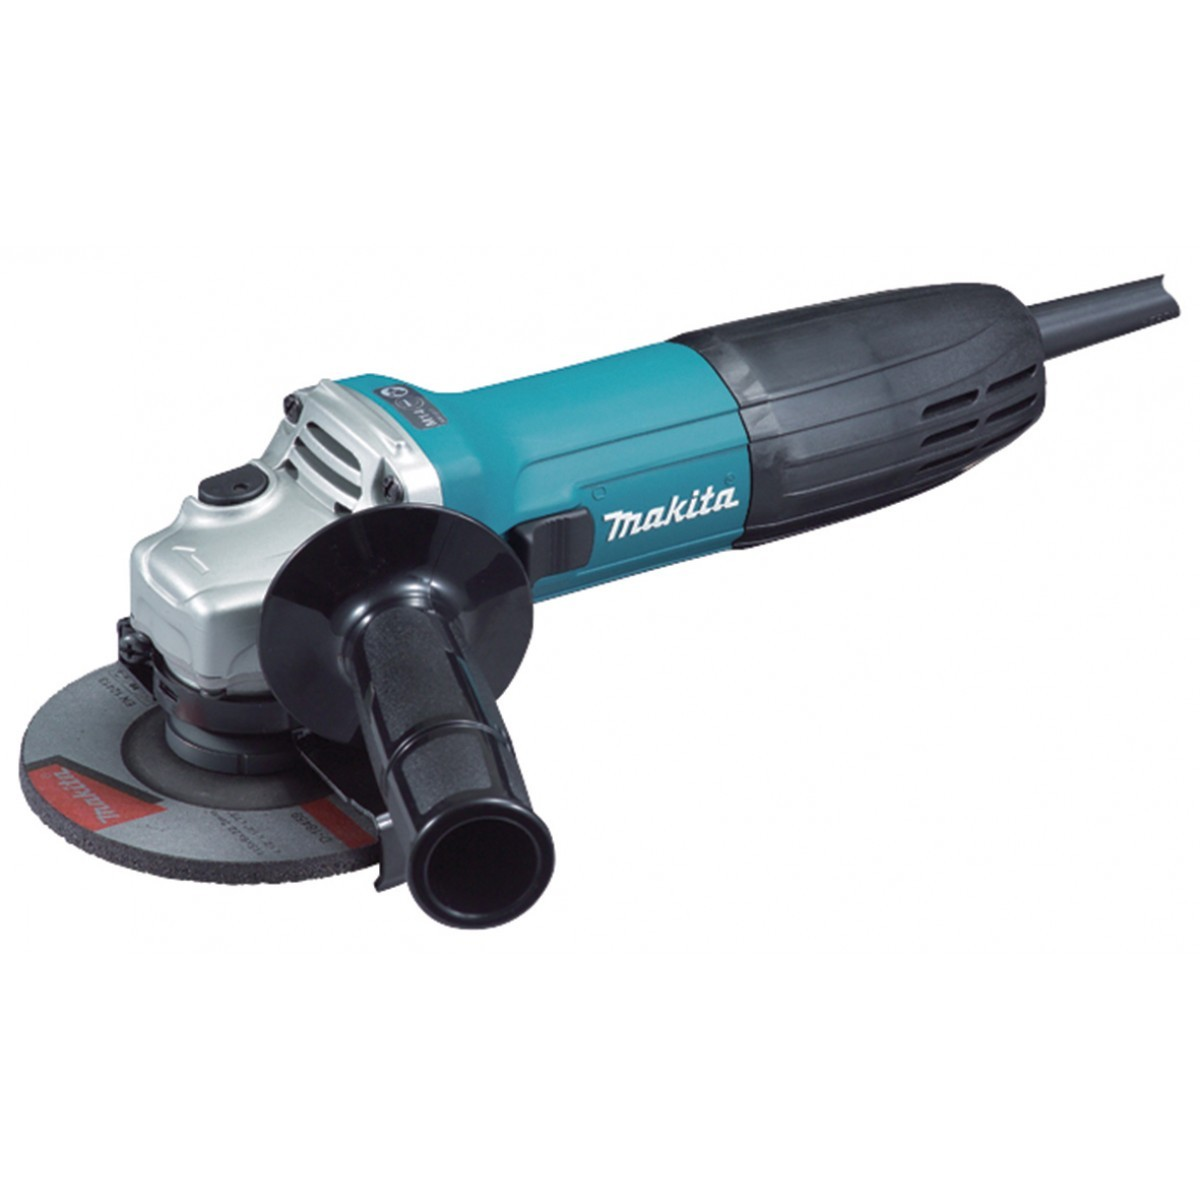 Makita GA4530R Slim Angle Grinder with Anti-Restart 110v